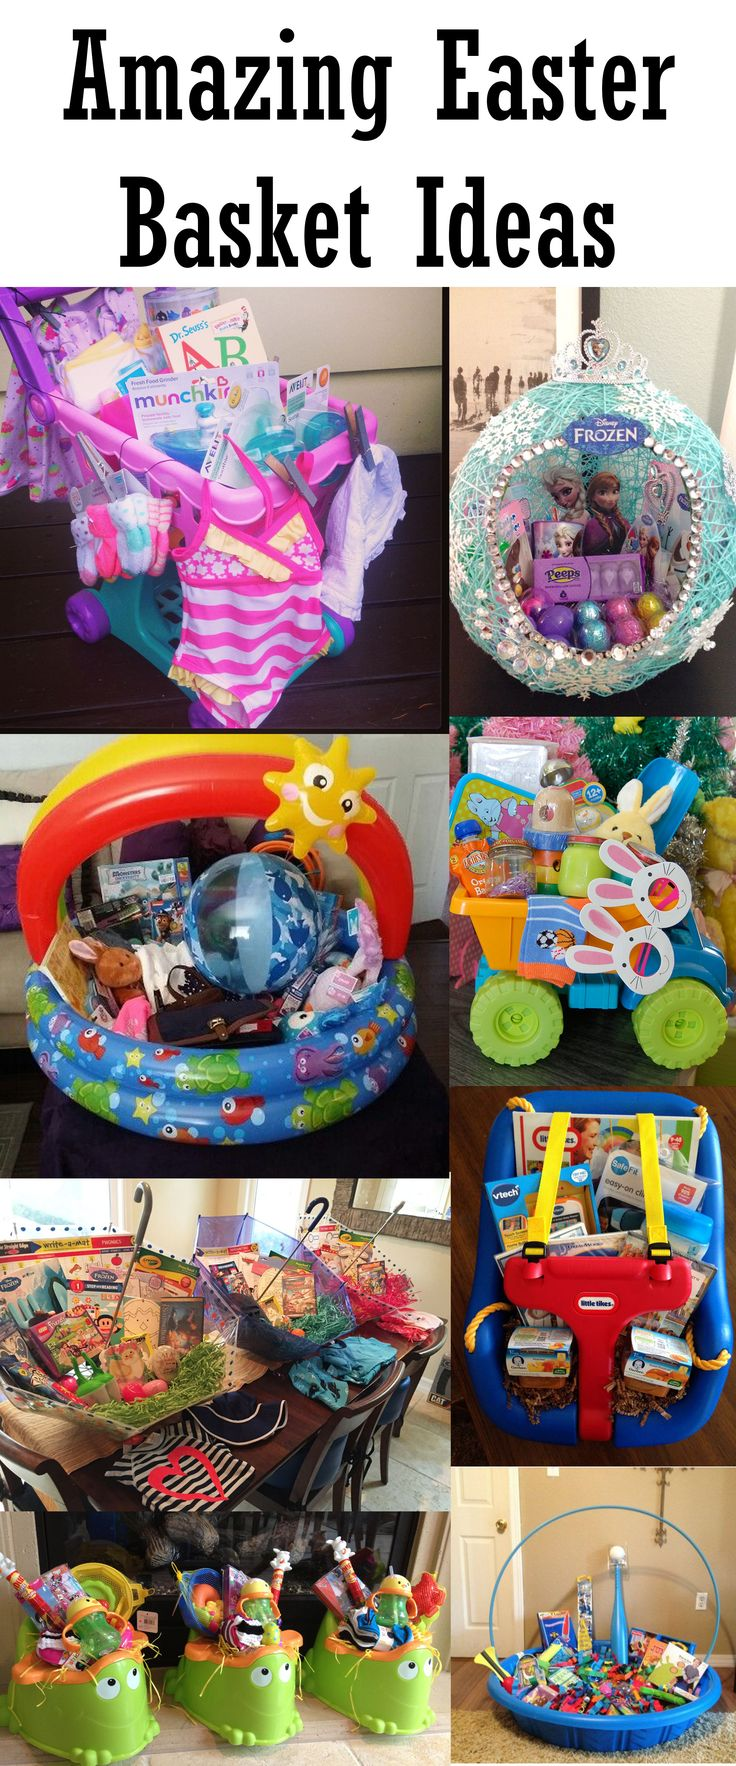 Best 25 easter baskets ideas on pinterest easter easter amazing easter basket ideas 1 baby food for gavin and books for alyssa negle Image collections